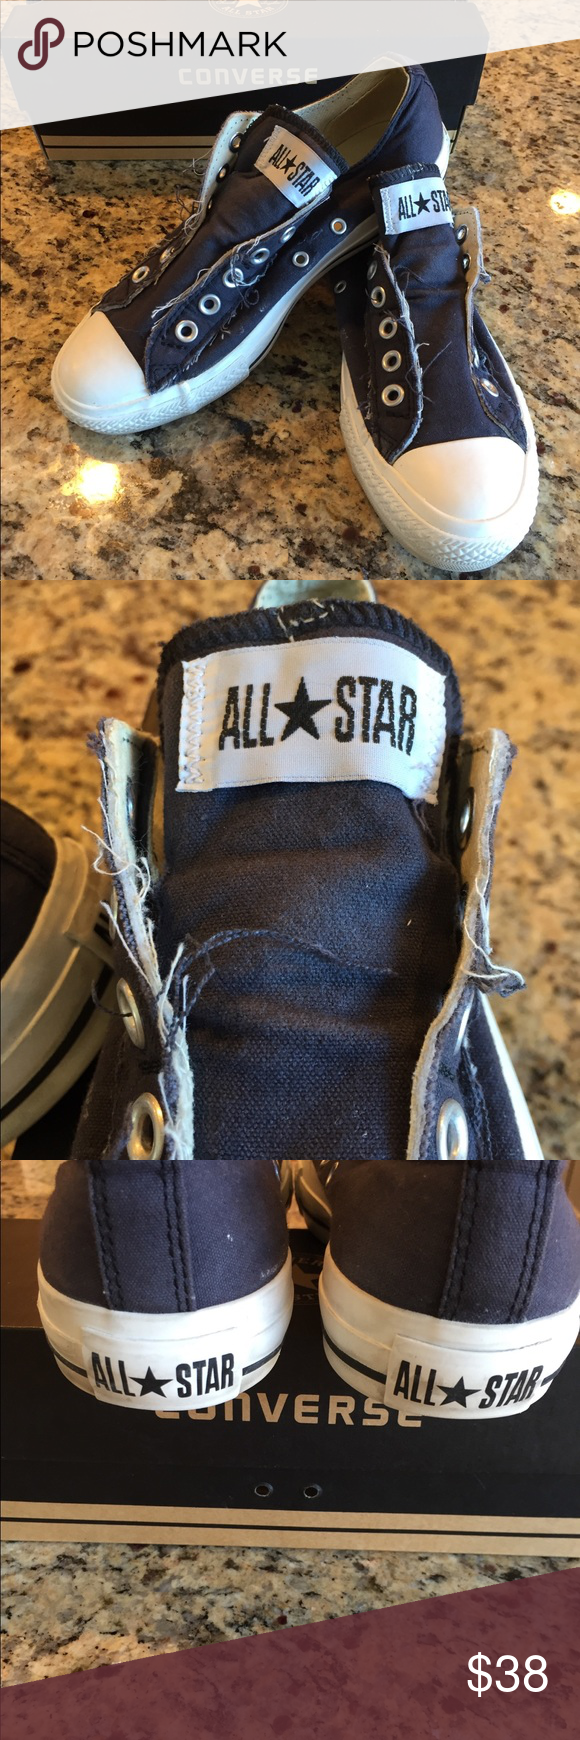 Converse All Star Frayed Black Snickers. | Converse, Converse all ...